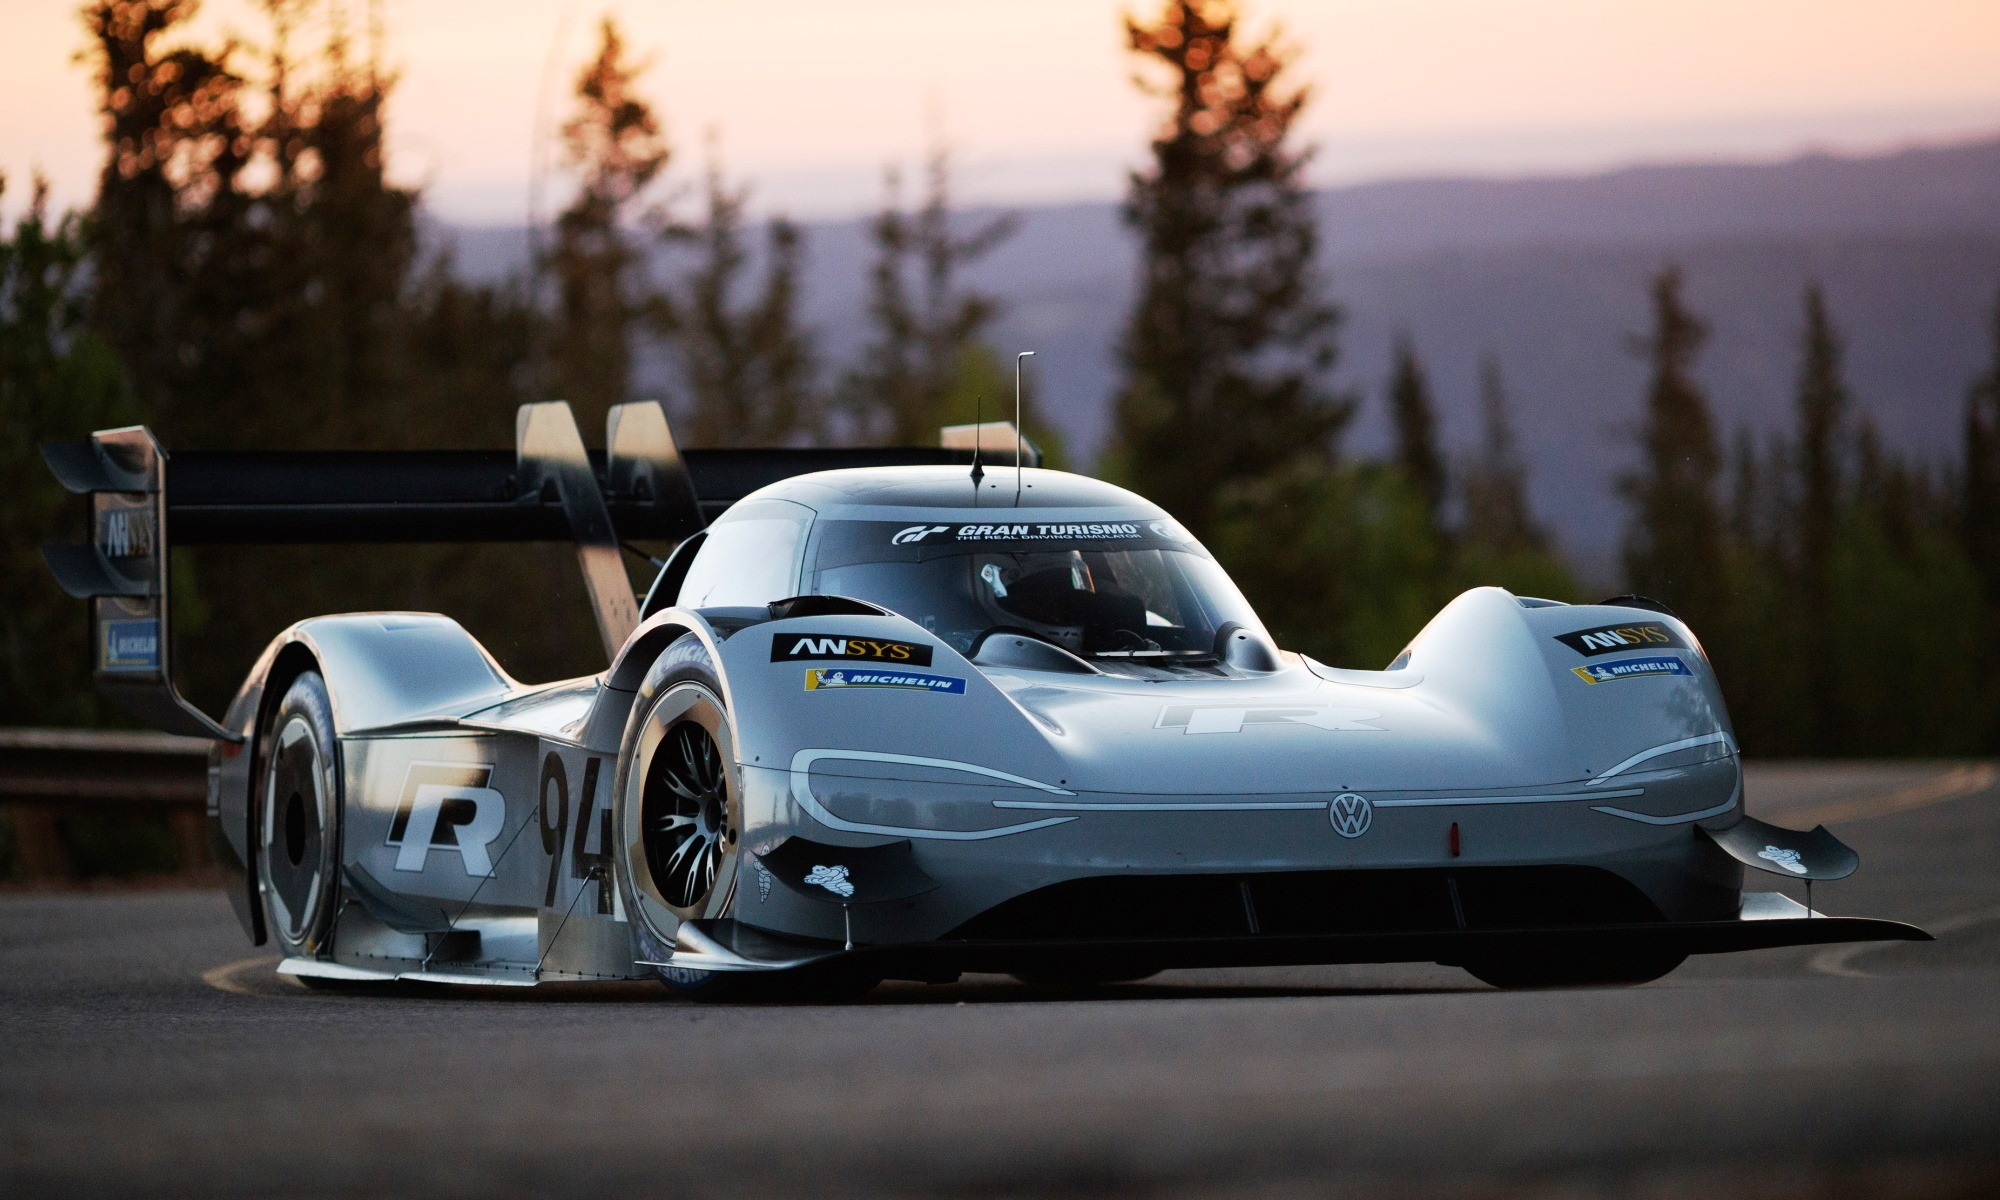 VW I.D. R Pikes Peak in race livery